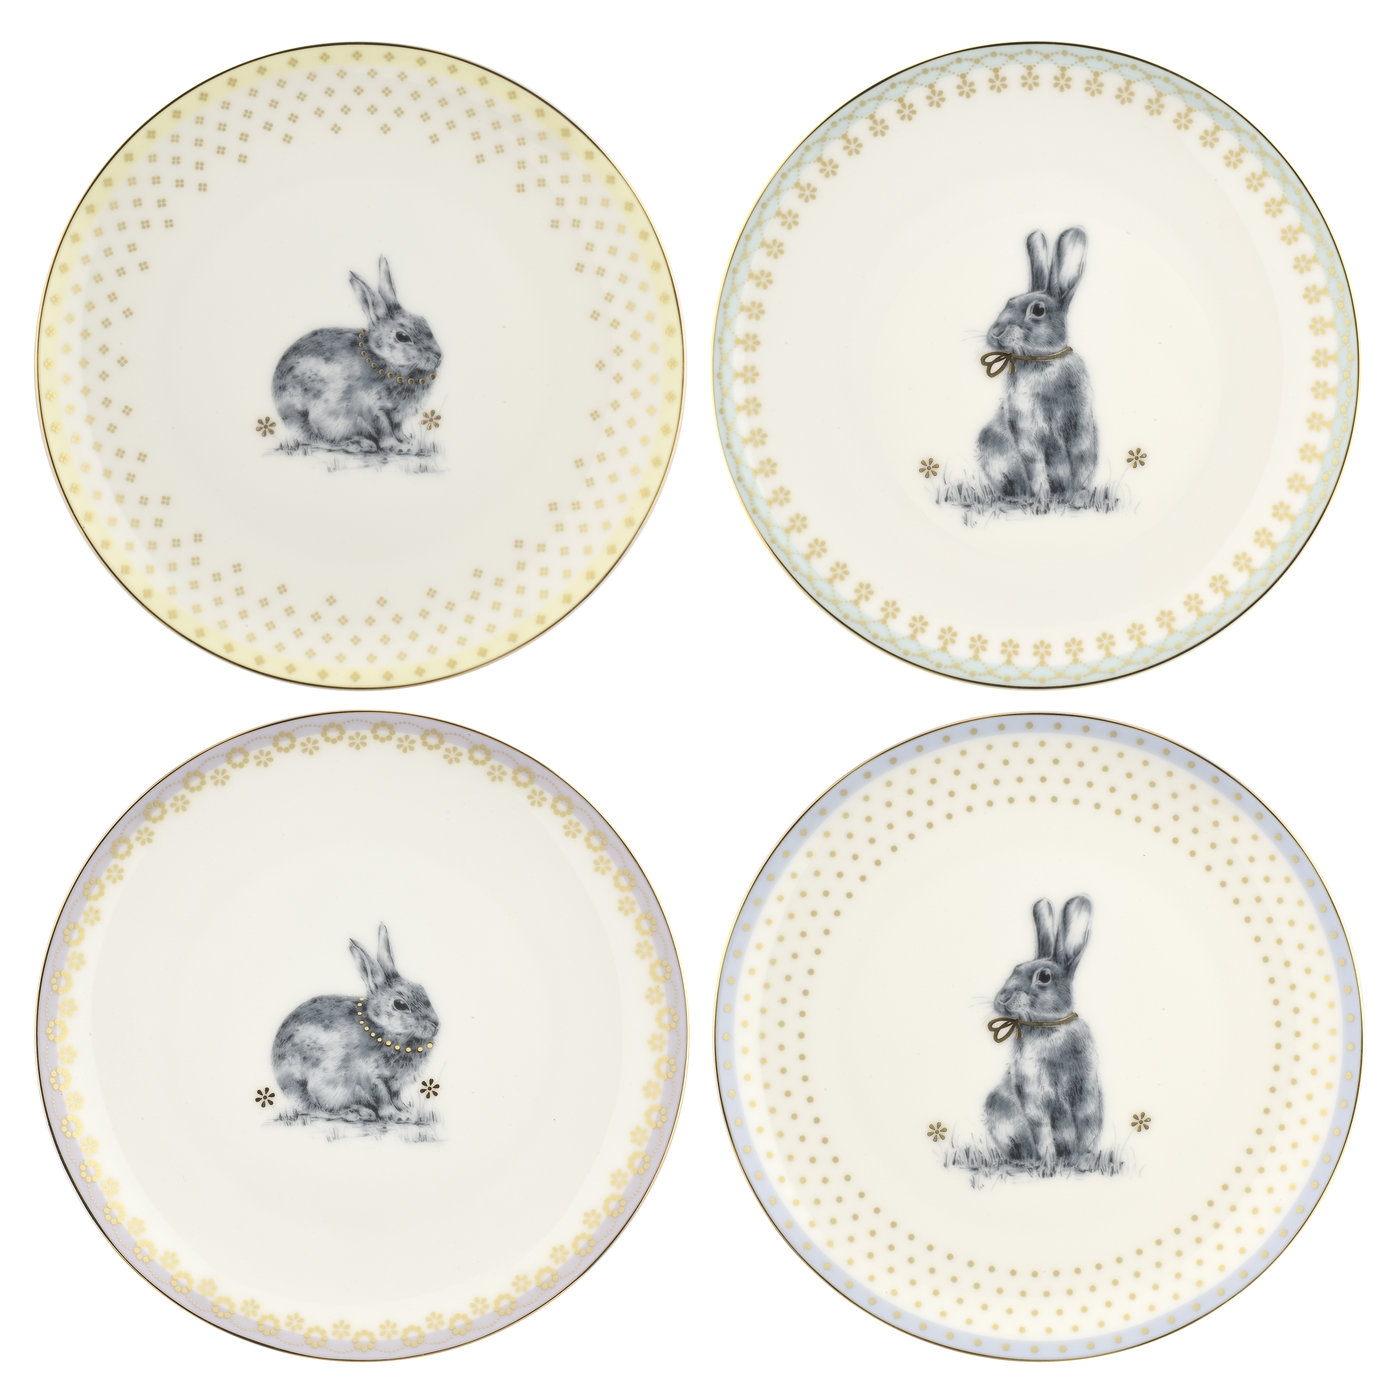 Spode Meadow Lane 8.2 Inch Salad Plate Set of 4 image number 0